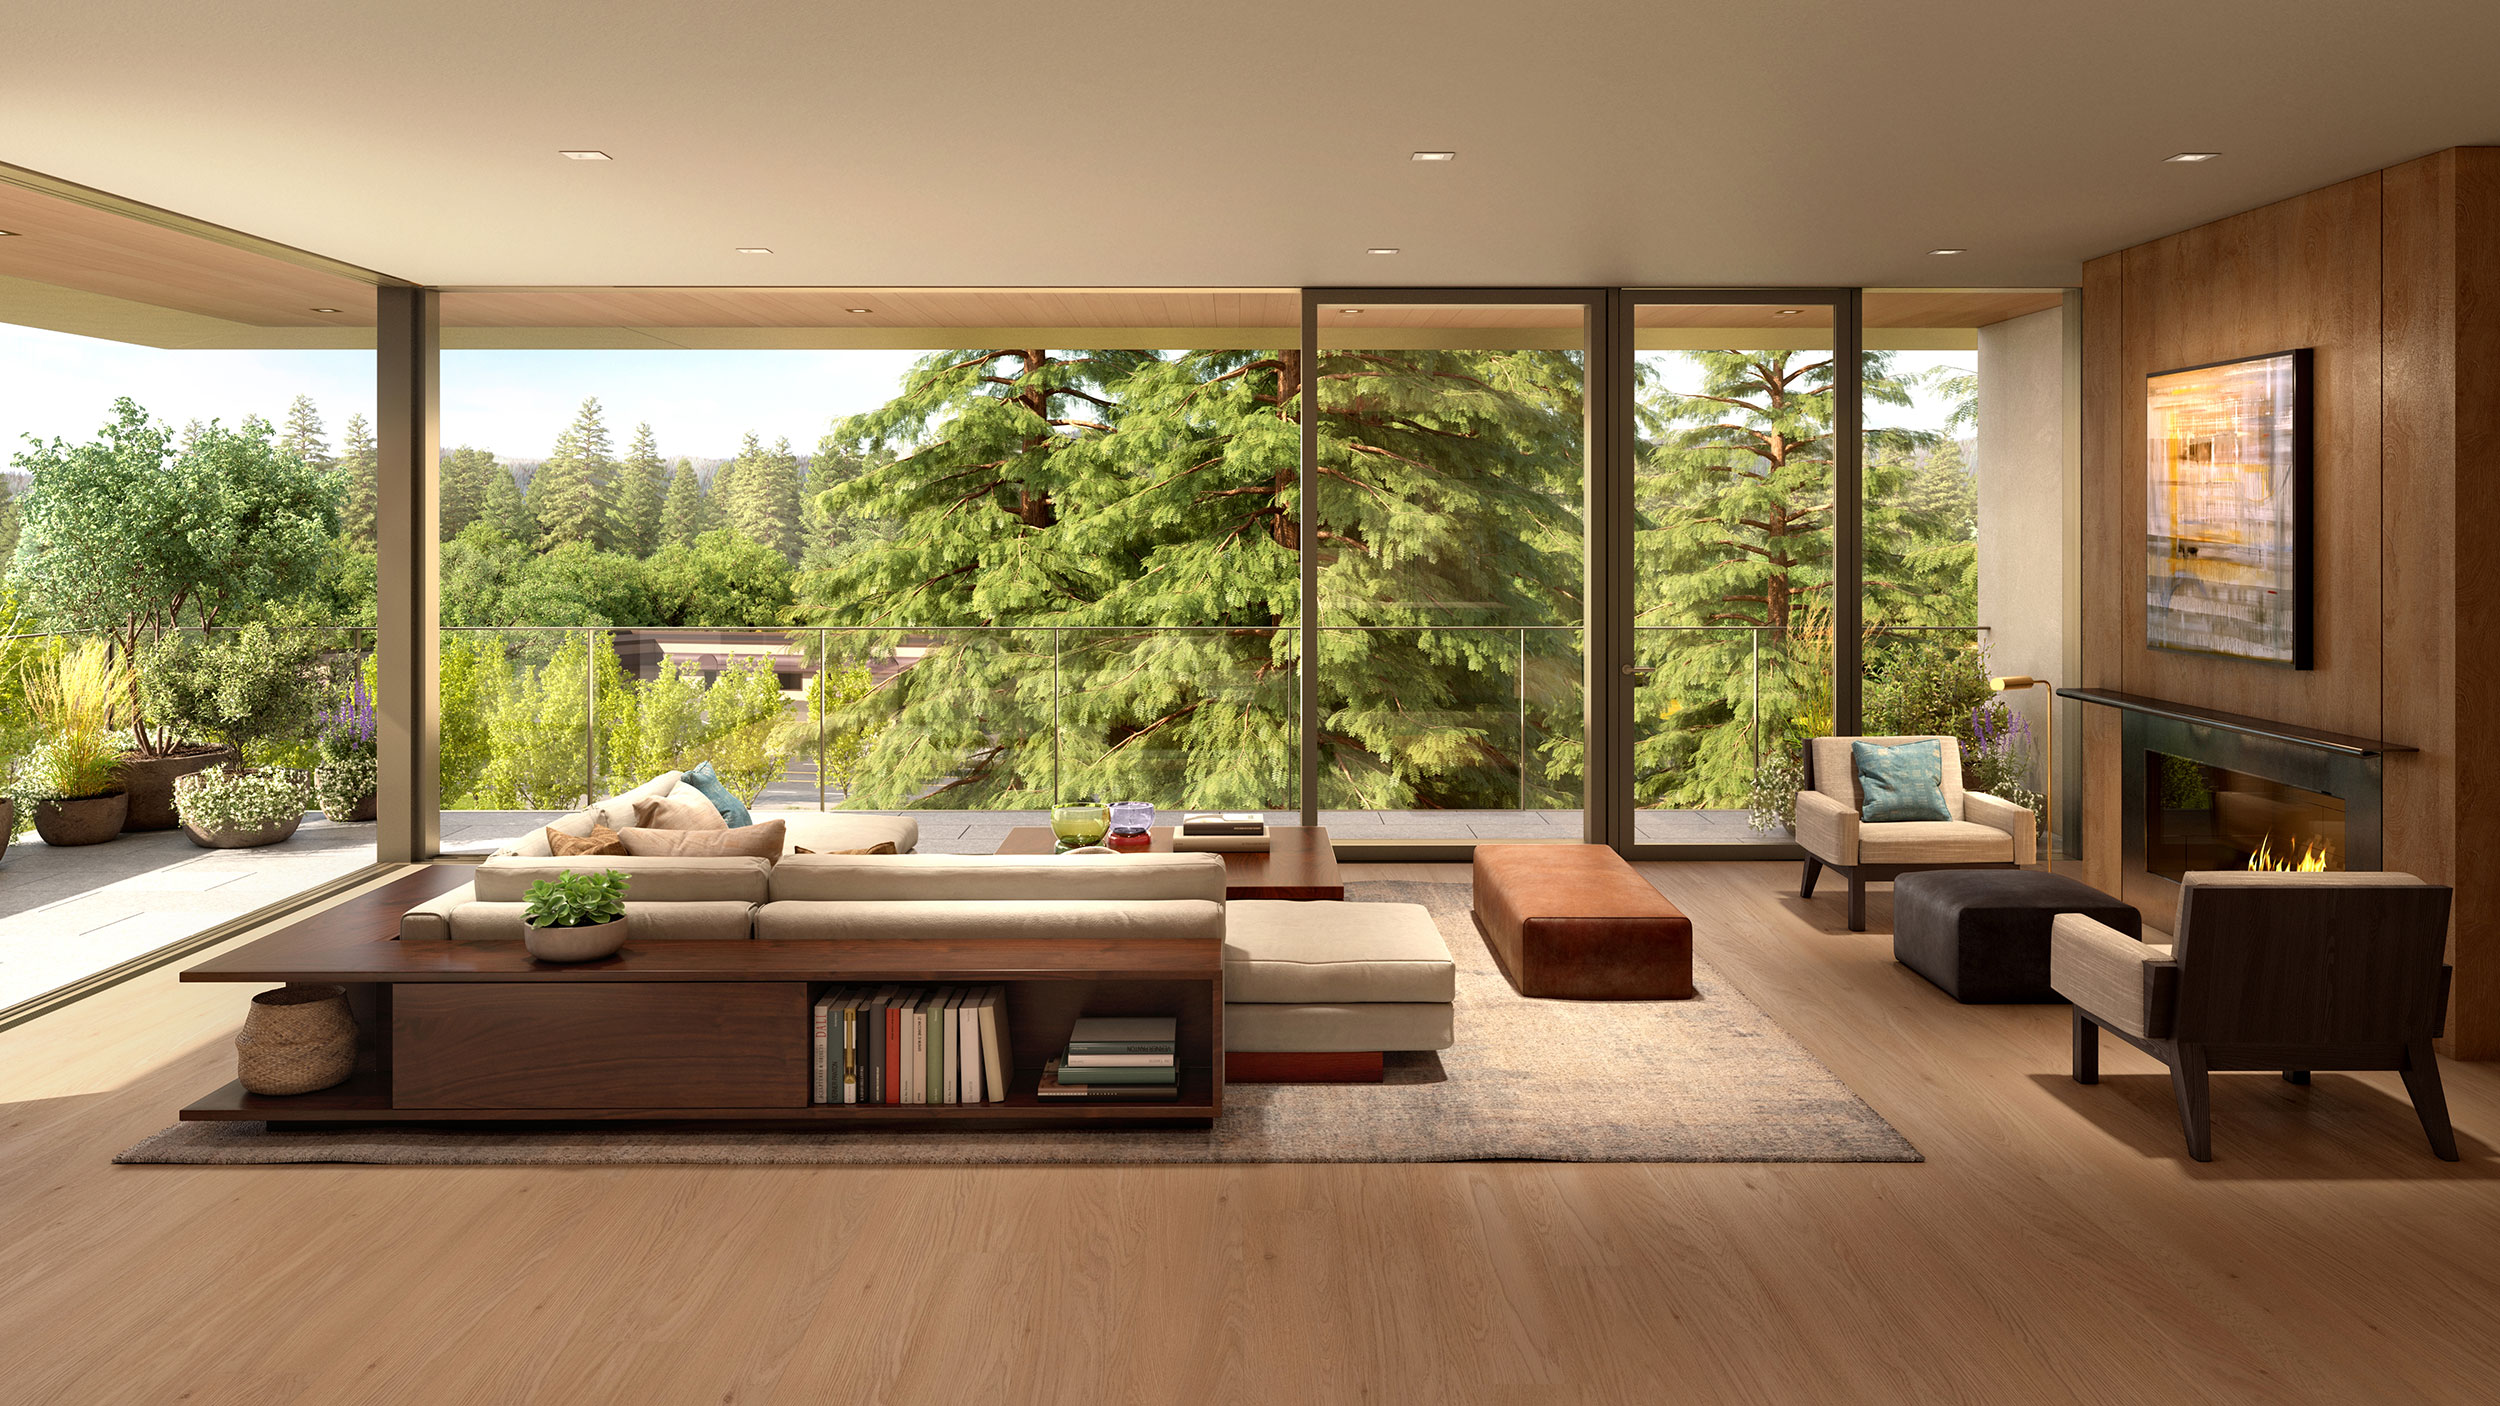 Sliding glass walls provide panoramic views of the redwoods and surrounding landscape.